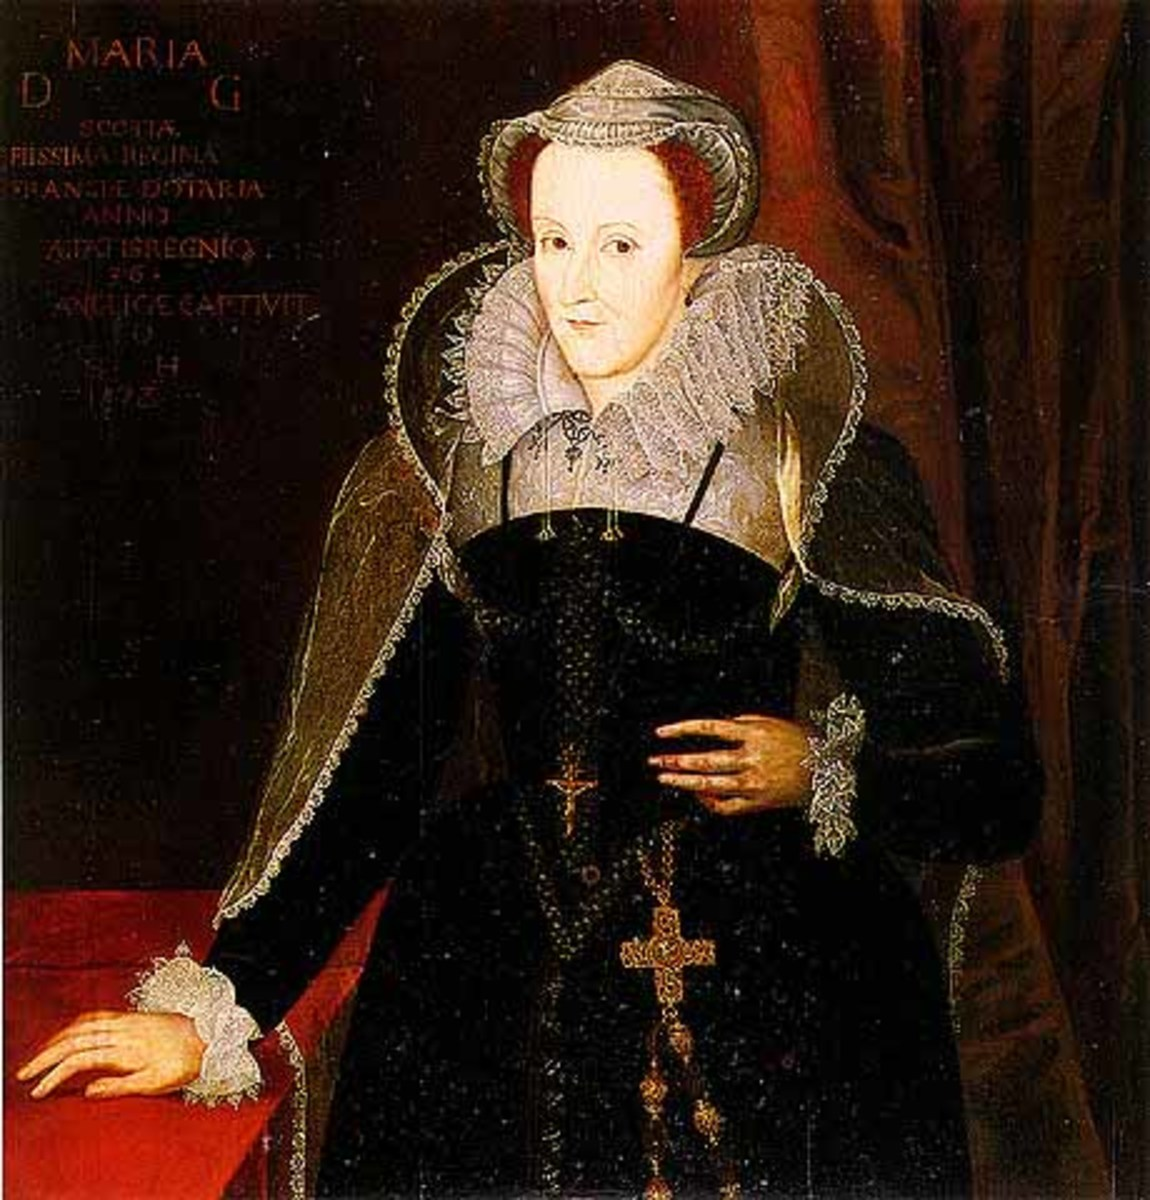 Mary Queen of Scots, Queen of Scots from 1542 to 1567 crowned at nine months of age (1542)